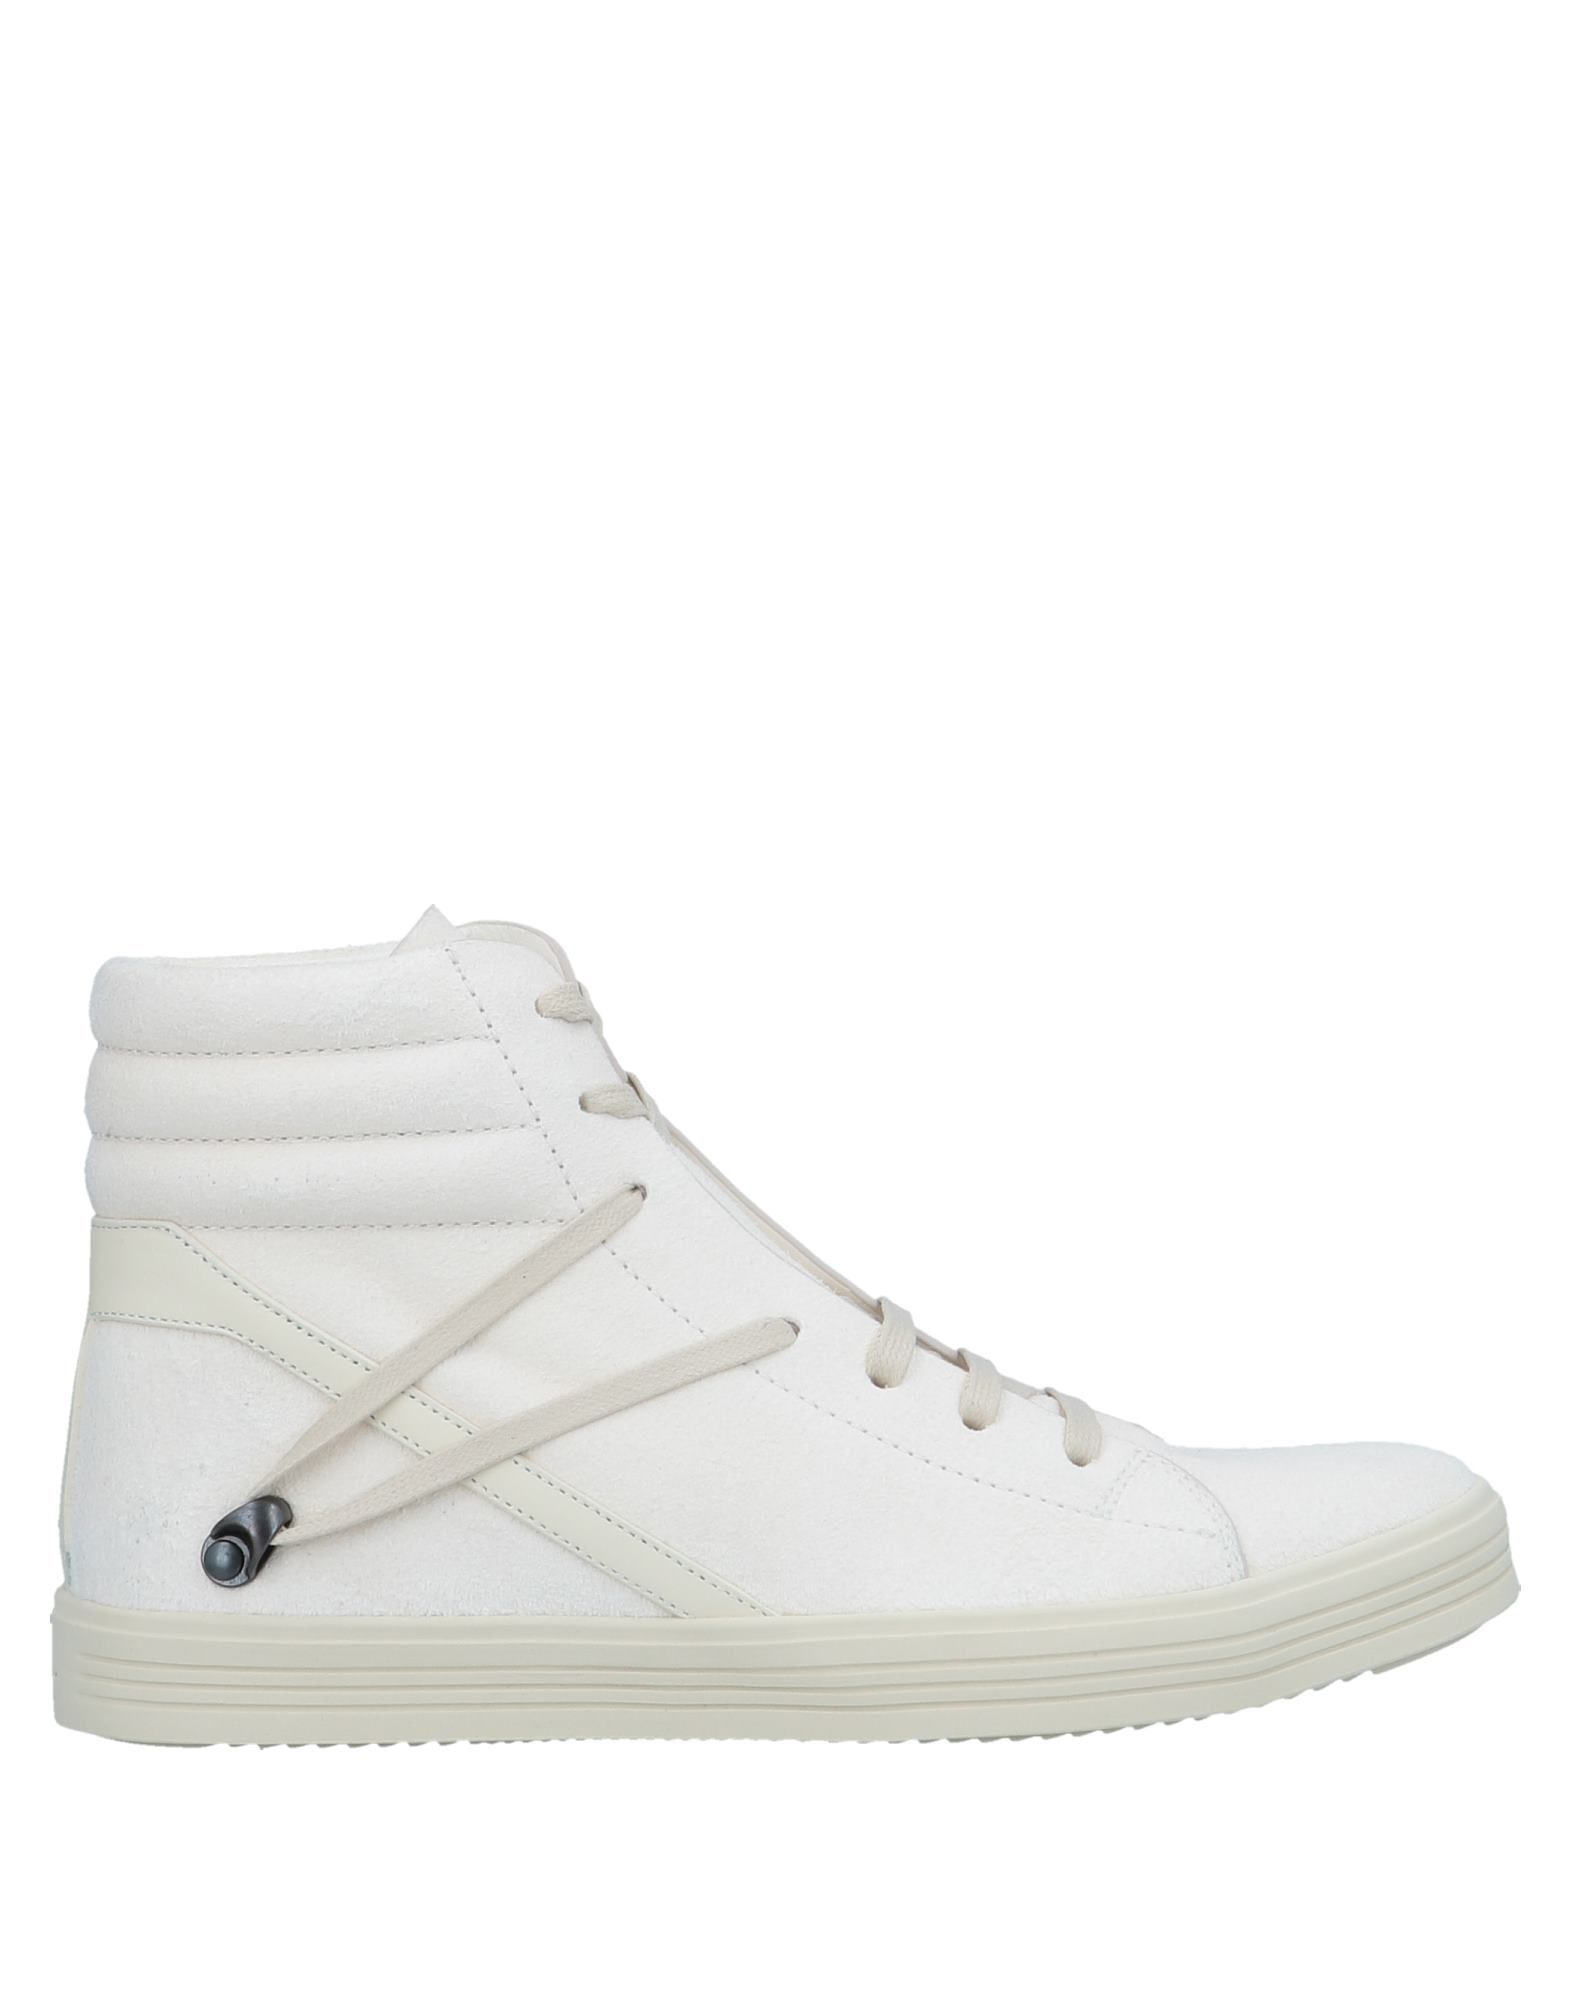 Rick Owens Sneakers - Women Rick Owens Sneakers - online on  Australia - Sneakers 11563311SF 45881a